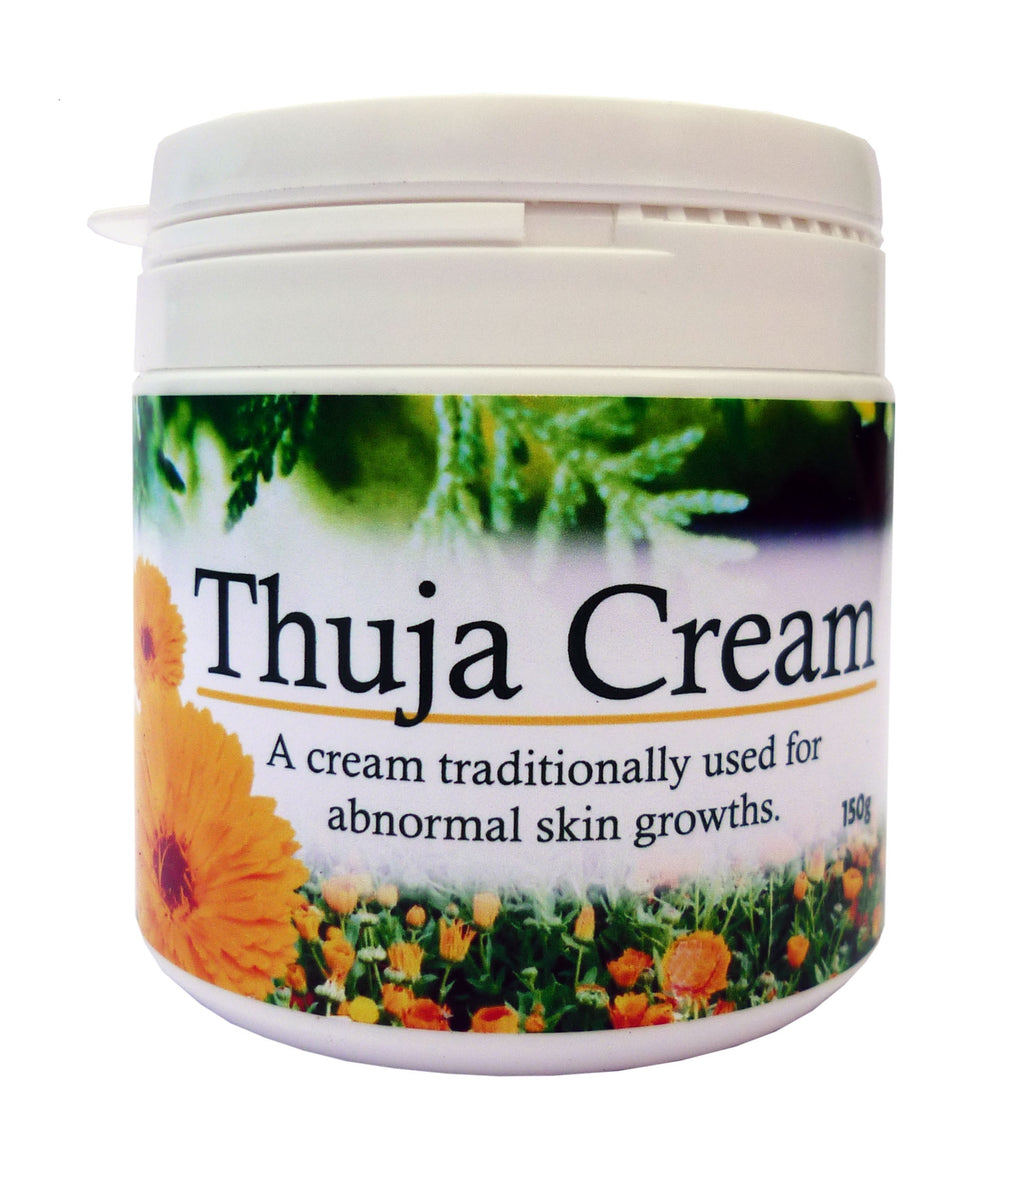 Farm and yard Remedies Thuja Cream Anti-viral Soothing Cream for Abnormal Skin Growths All Natural